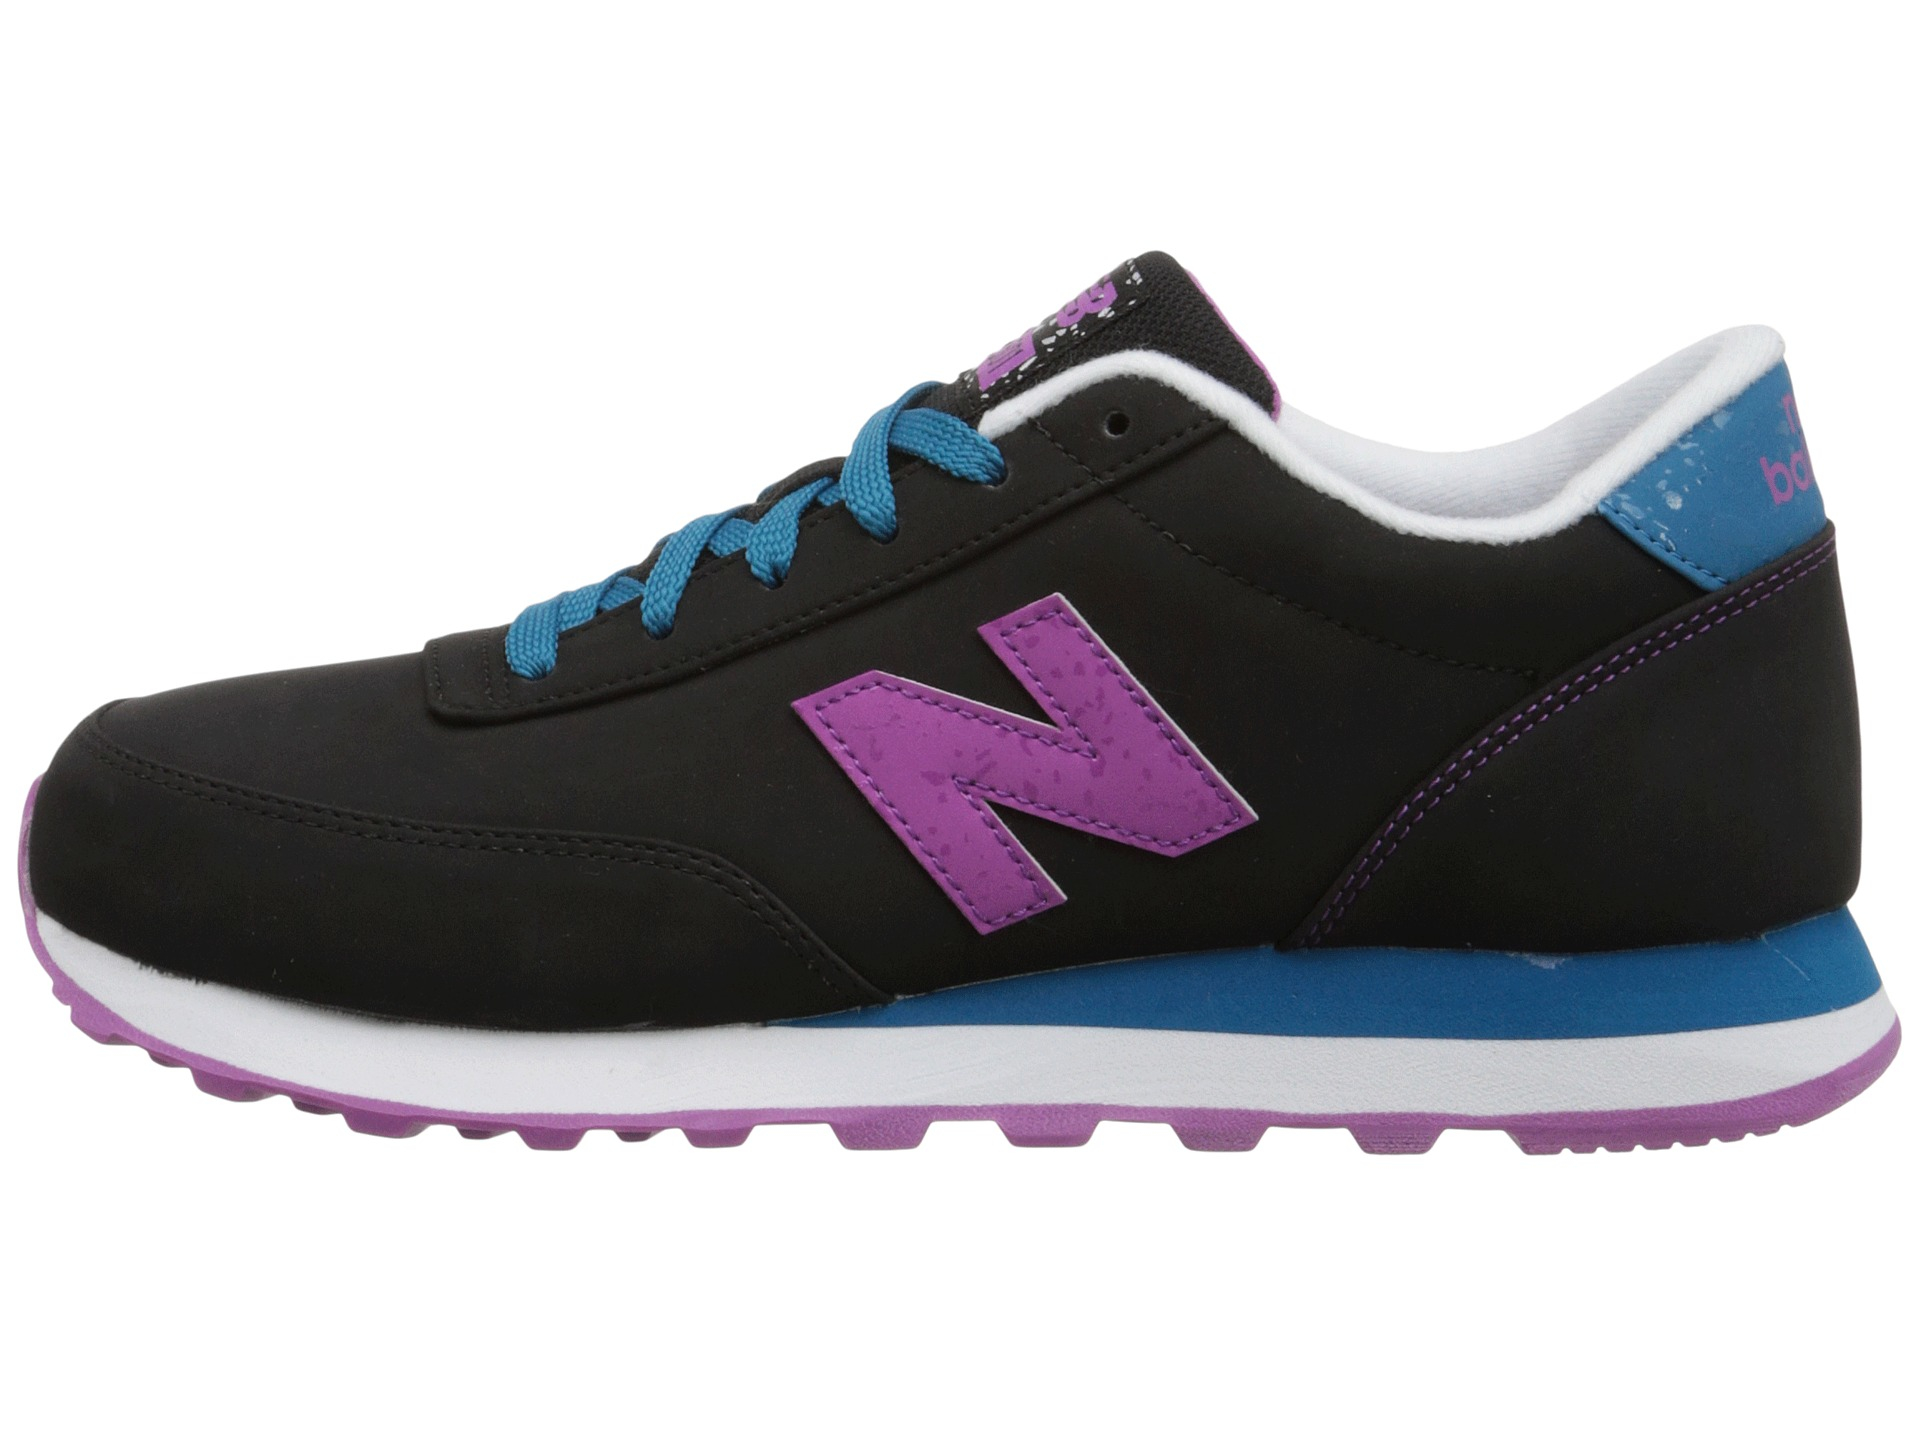 New Balance Shoes With Sl Last